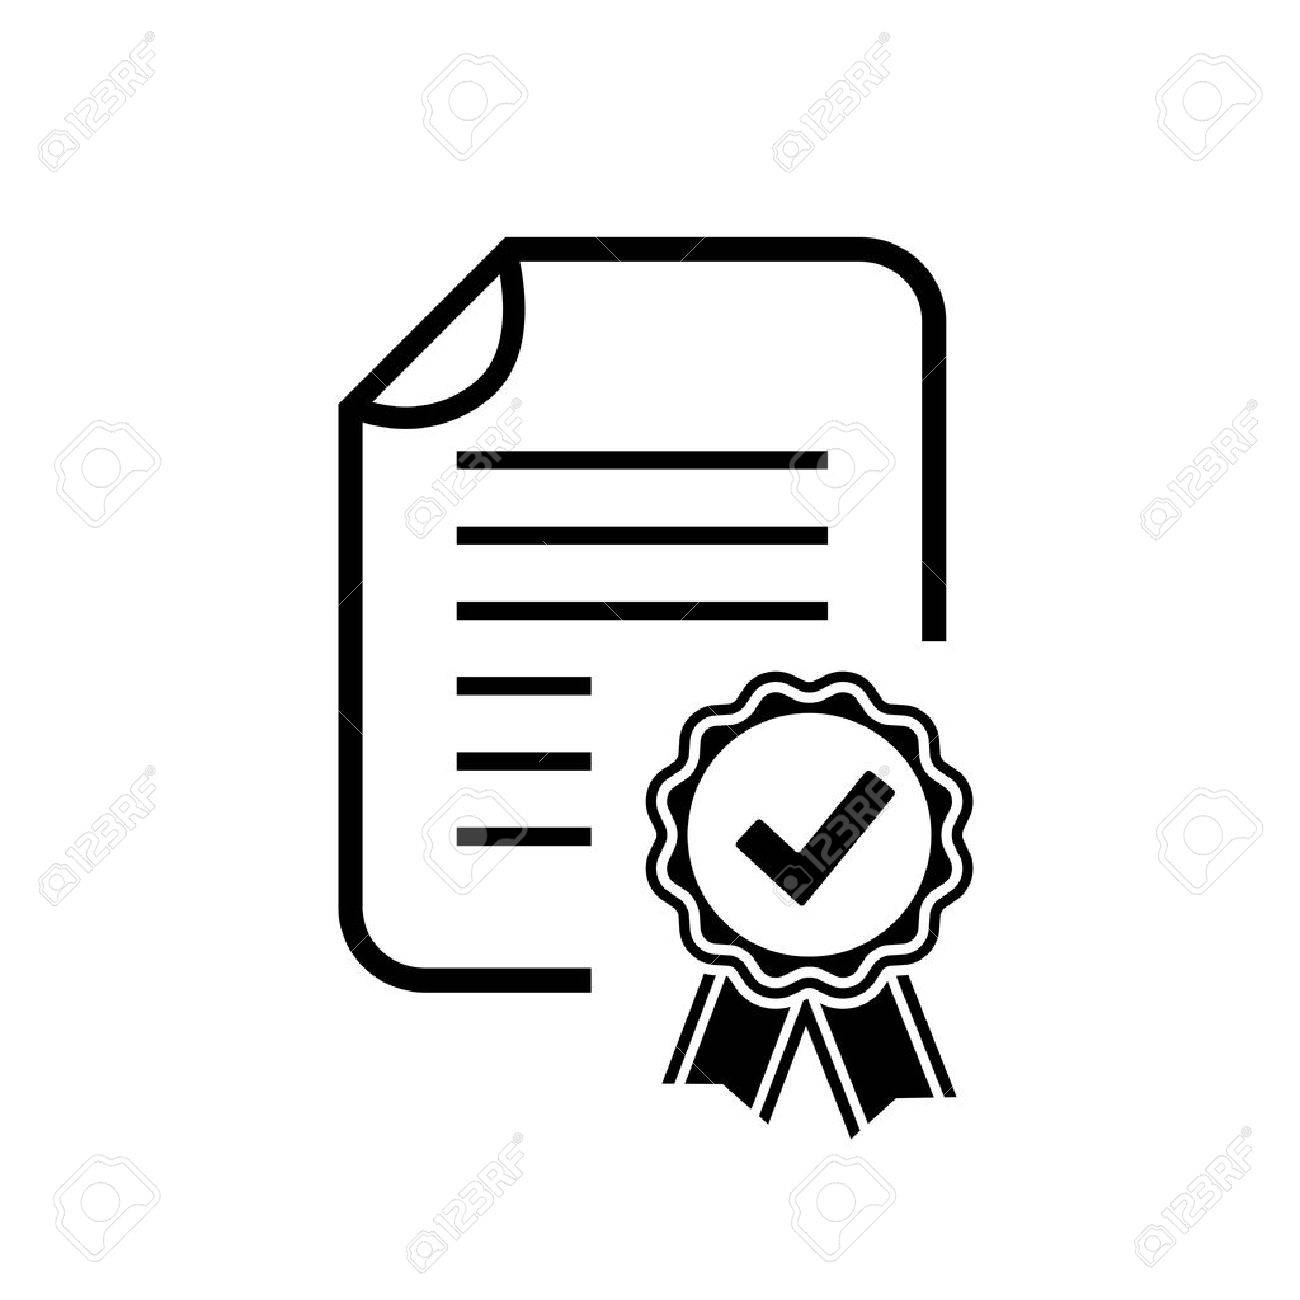 Diploma certificate icon - 59213883